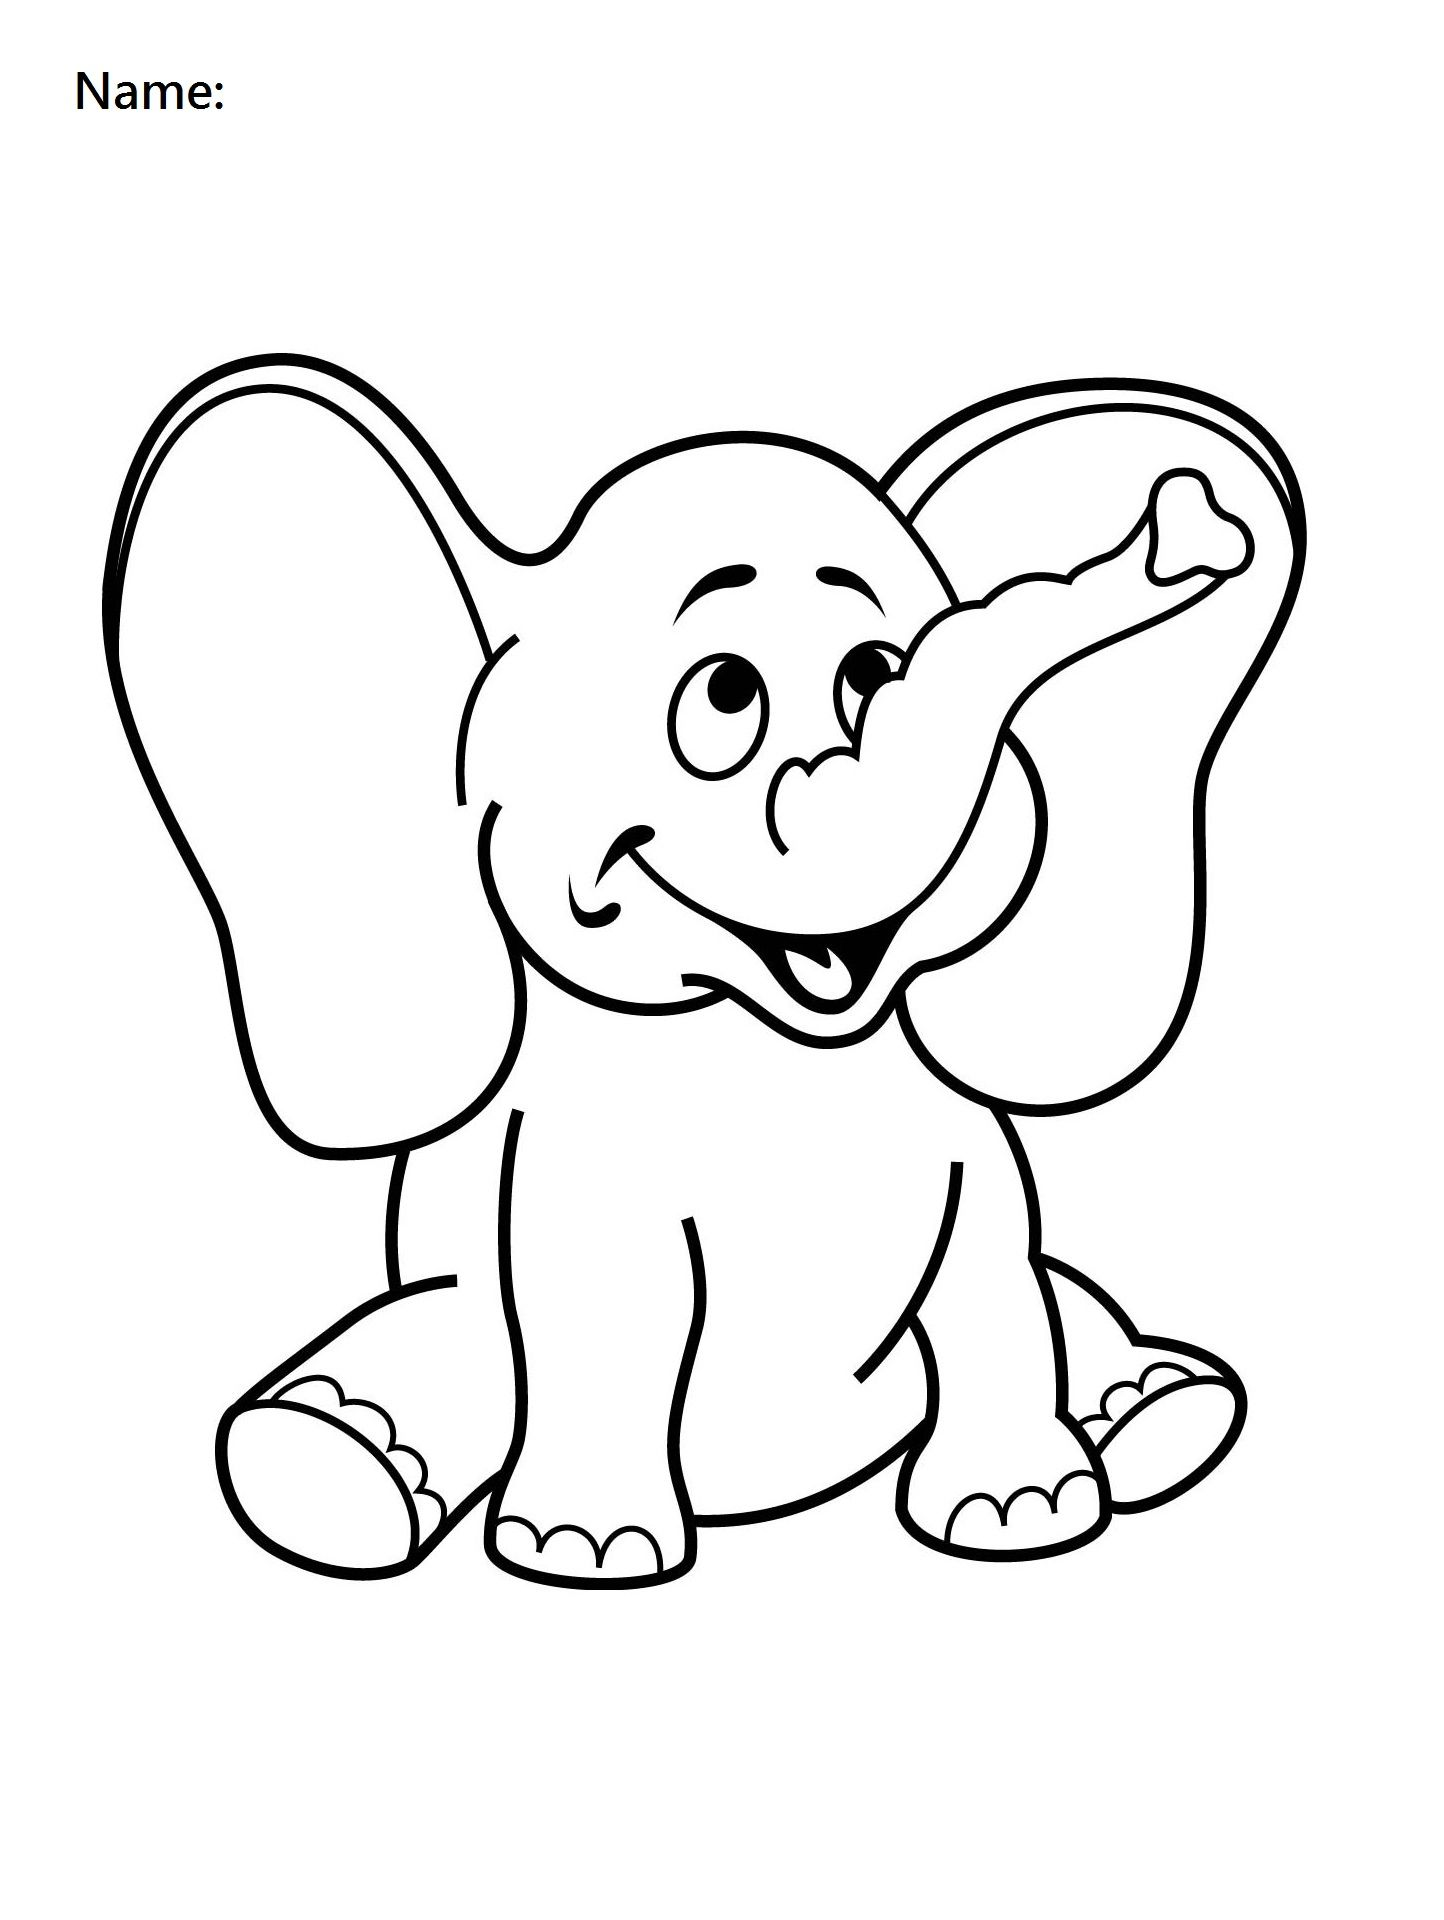 4 Year Old Worksheets Printable Coloring Elephant | Preschool ...